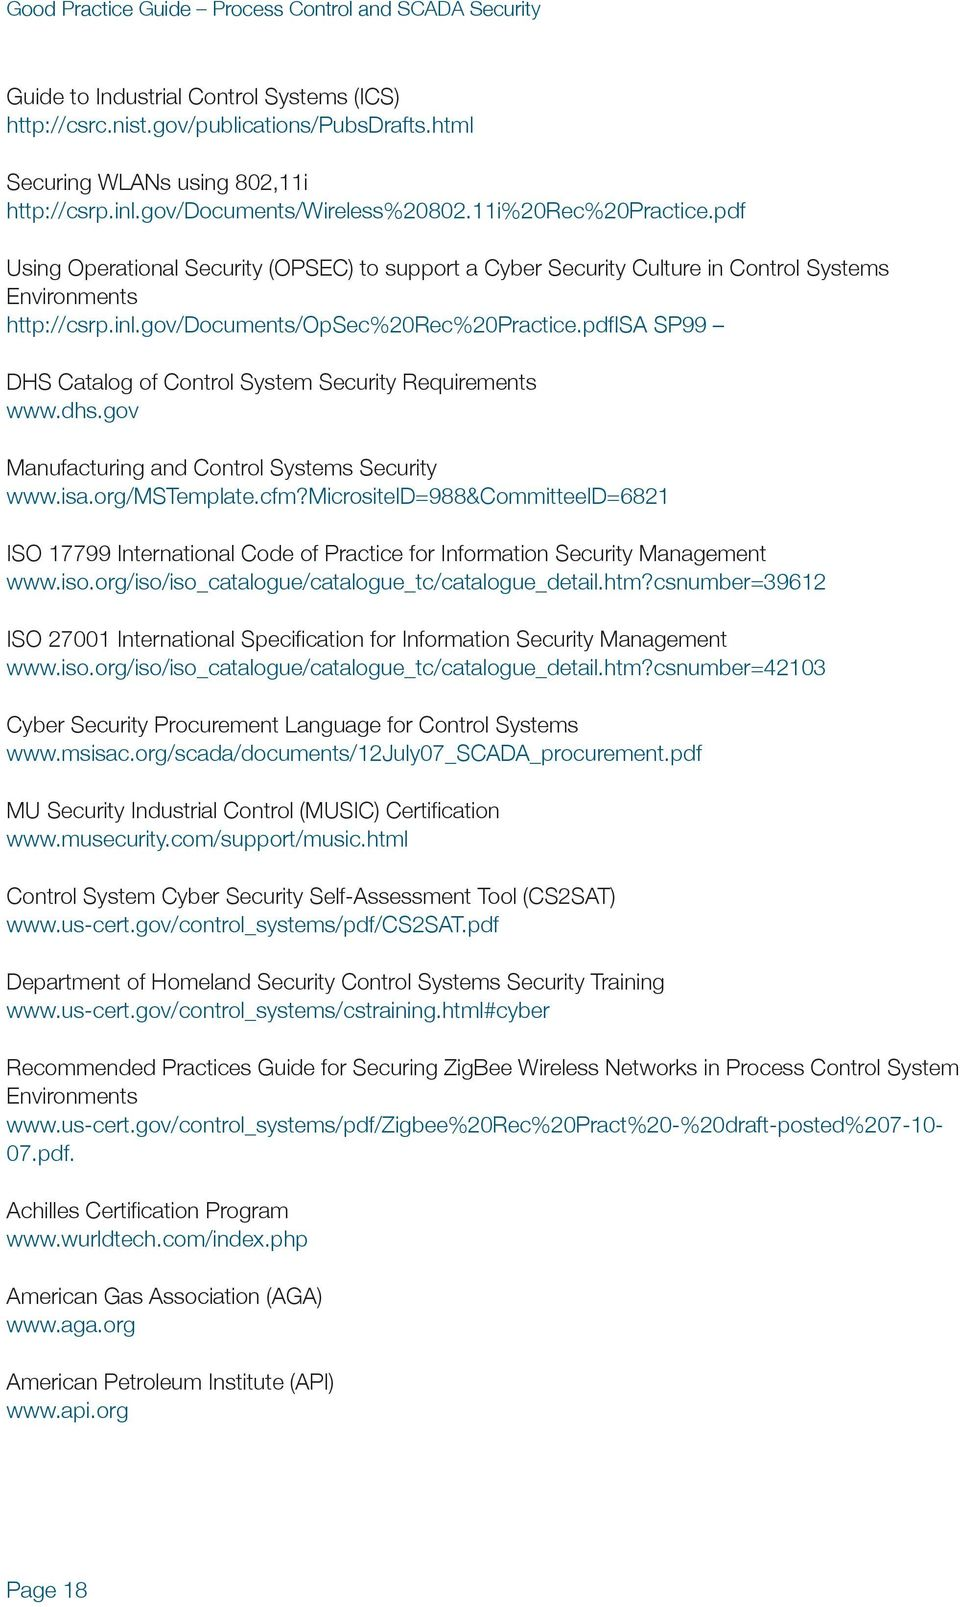 gov/documents/opsec%20rec%20practice.pdfisa SP99 DHS Catalog of Control System Security Requirements www.dhs.gov Manufacturing and Control Systems Security www.isa.org/mstemplate.cfm?